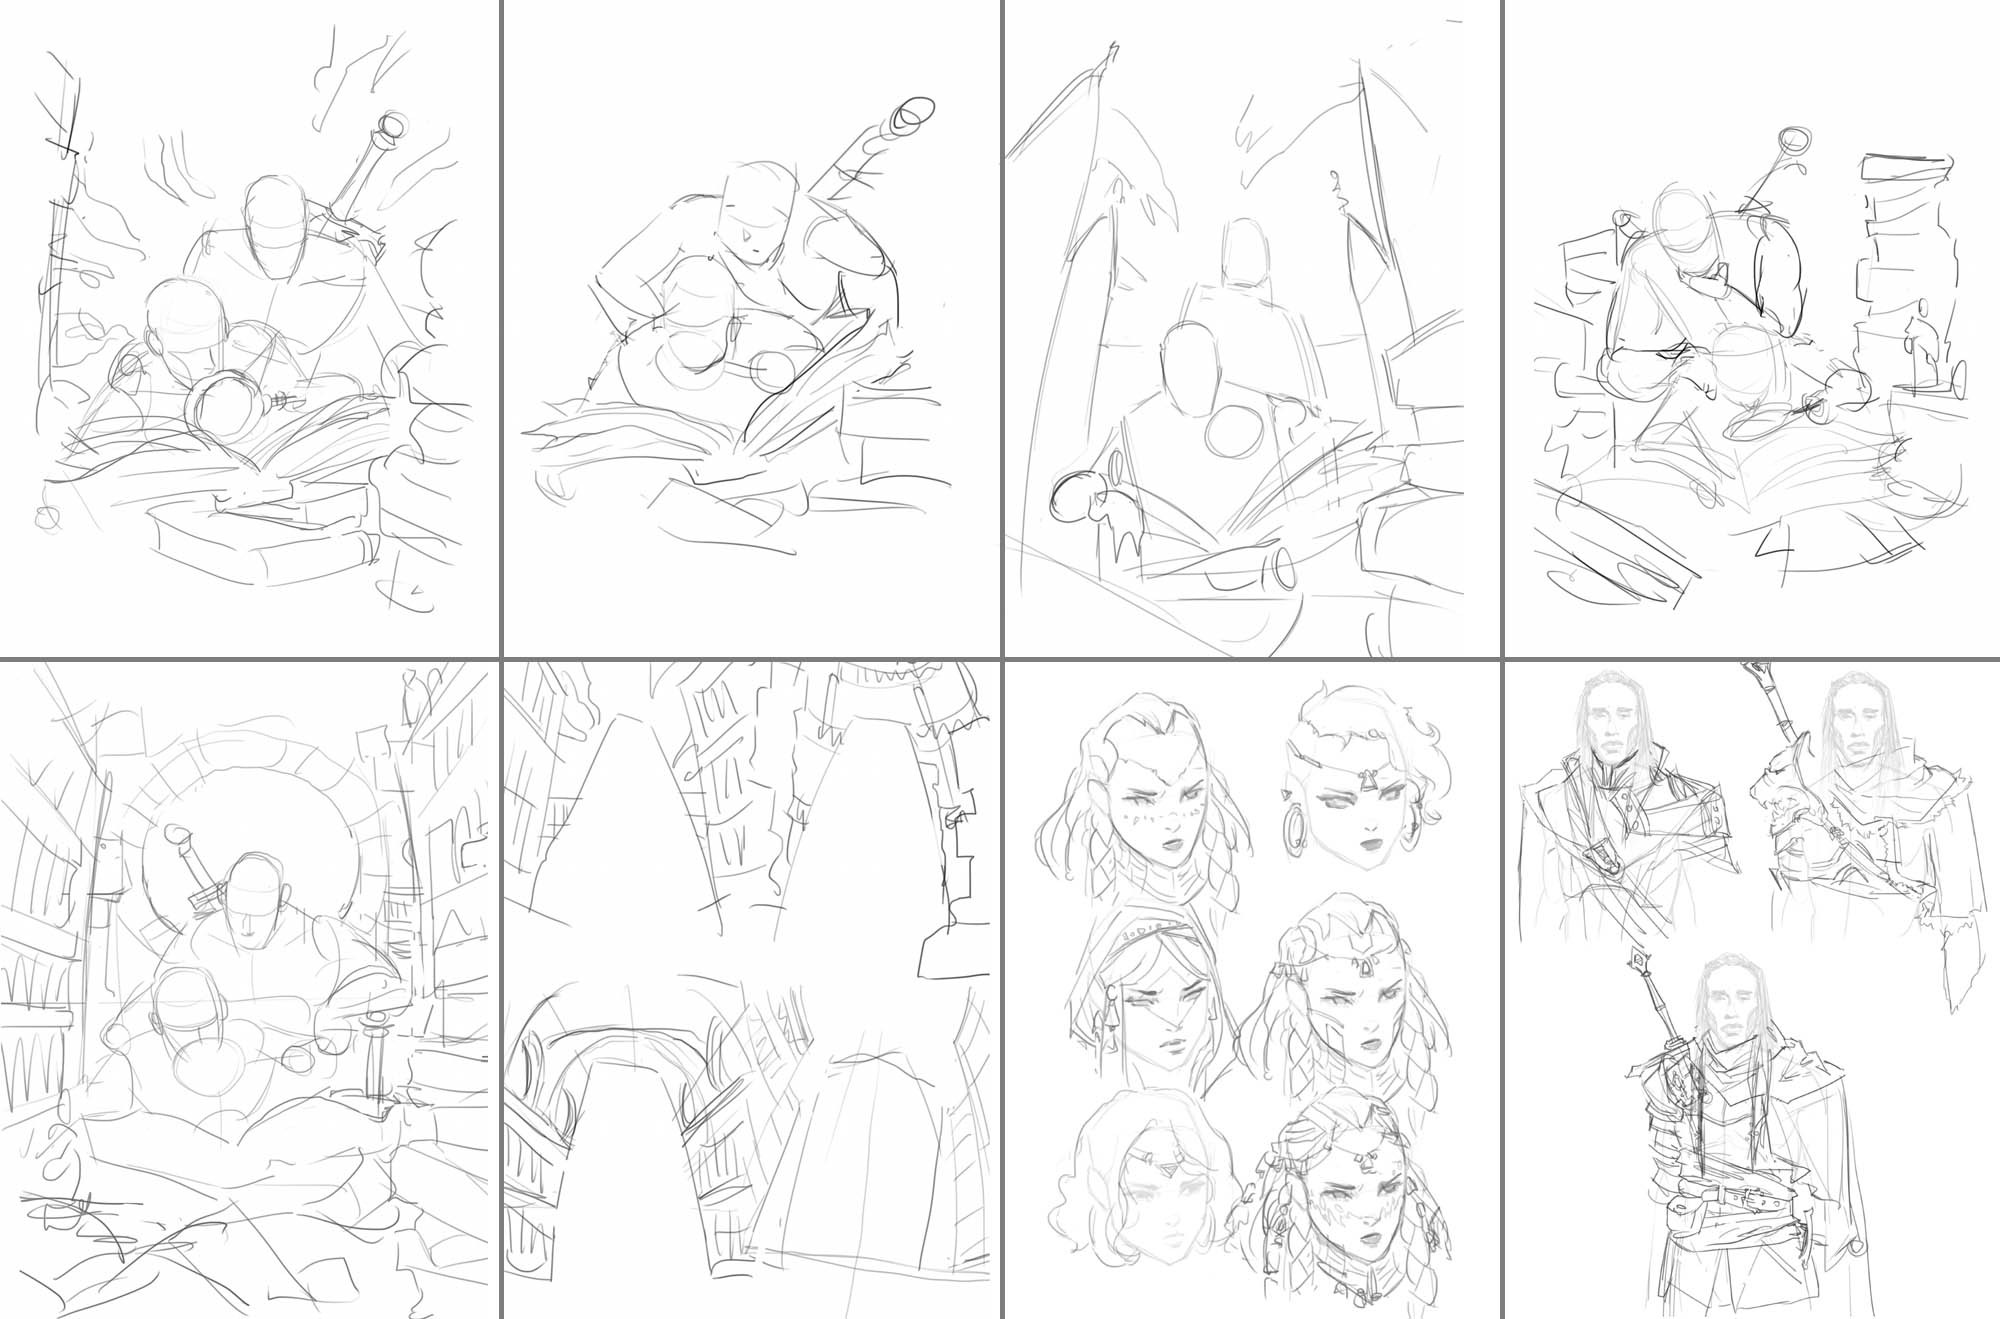 1. Many compositional and character studies